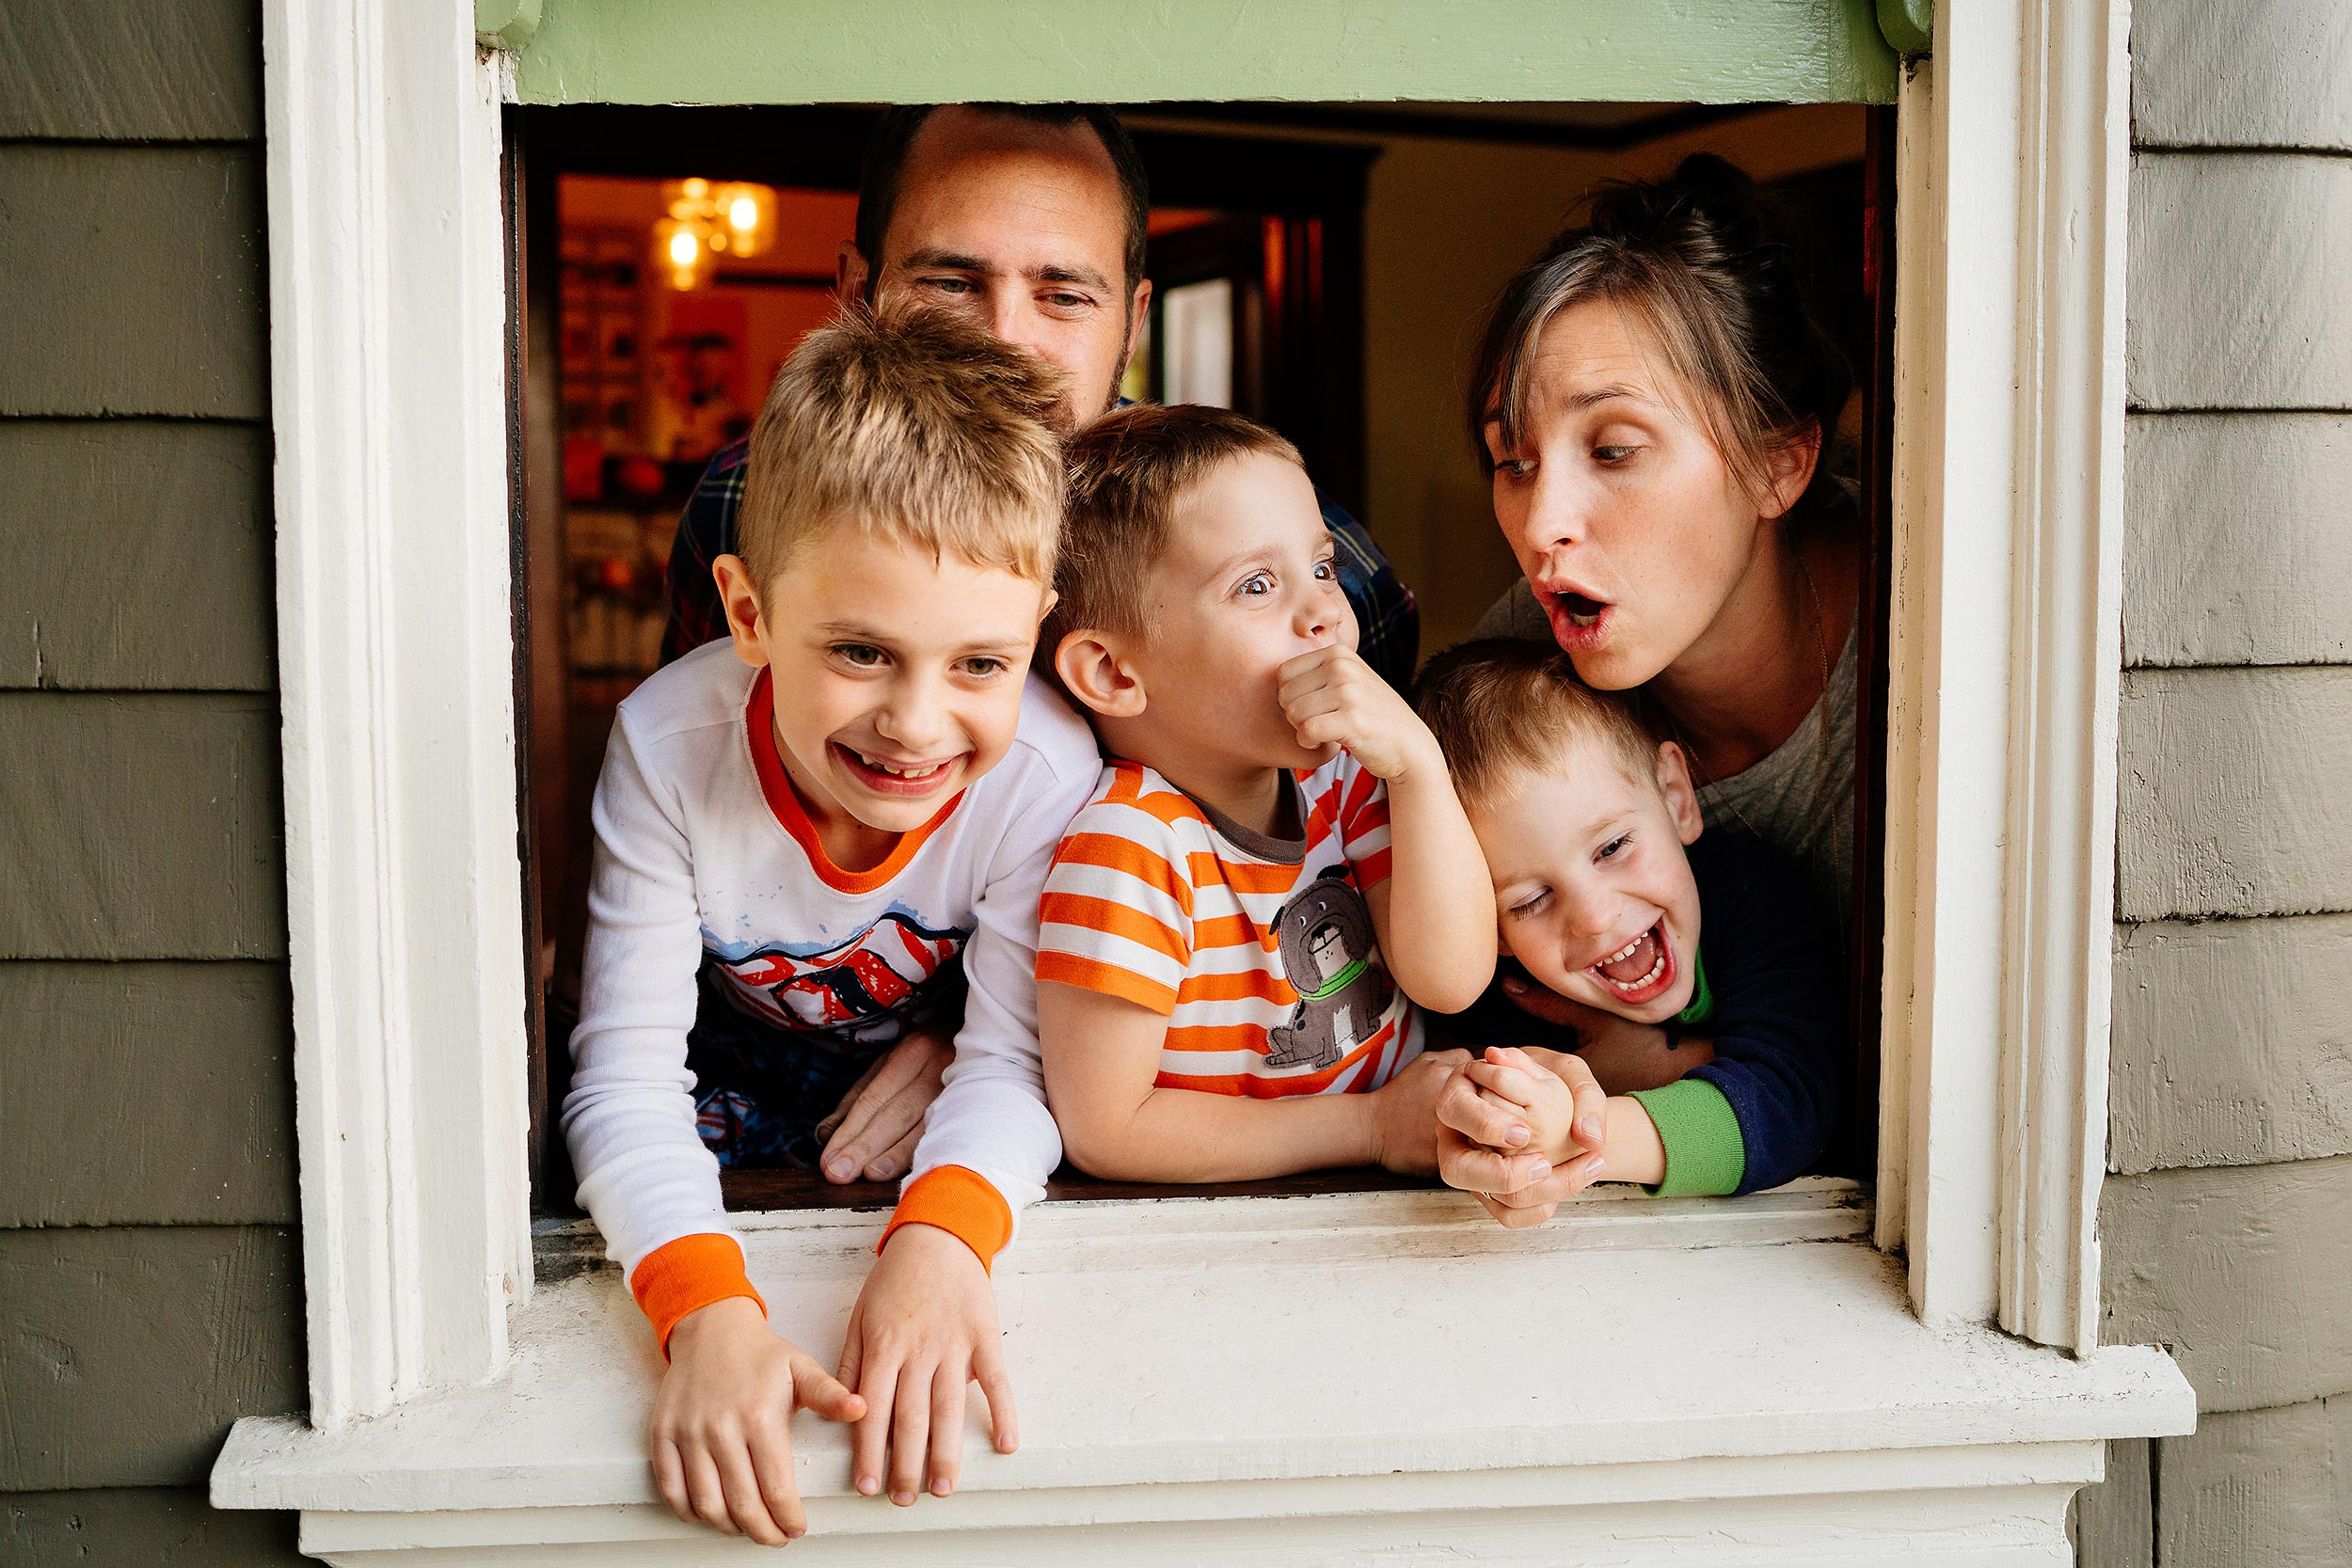 george-boys-1492-family-window